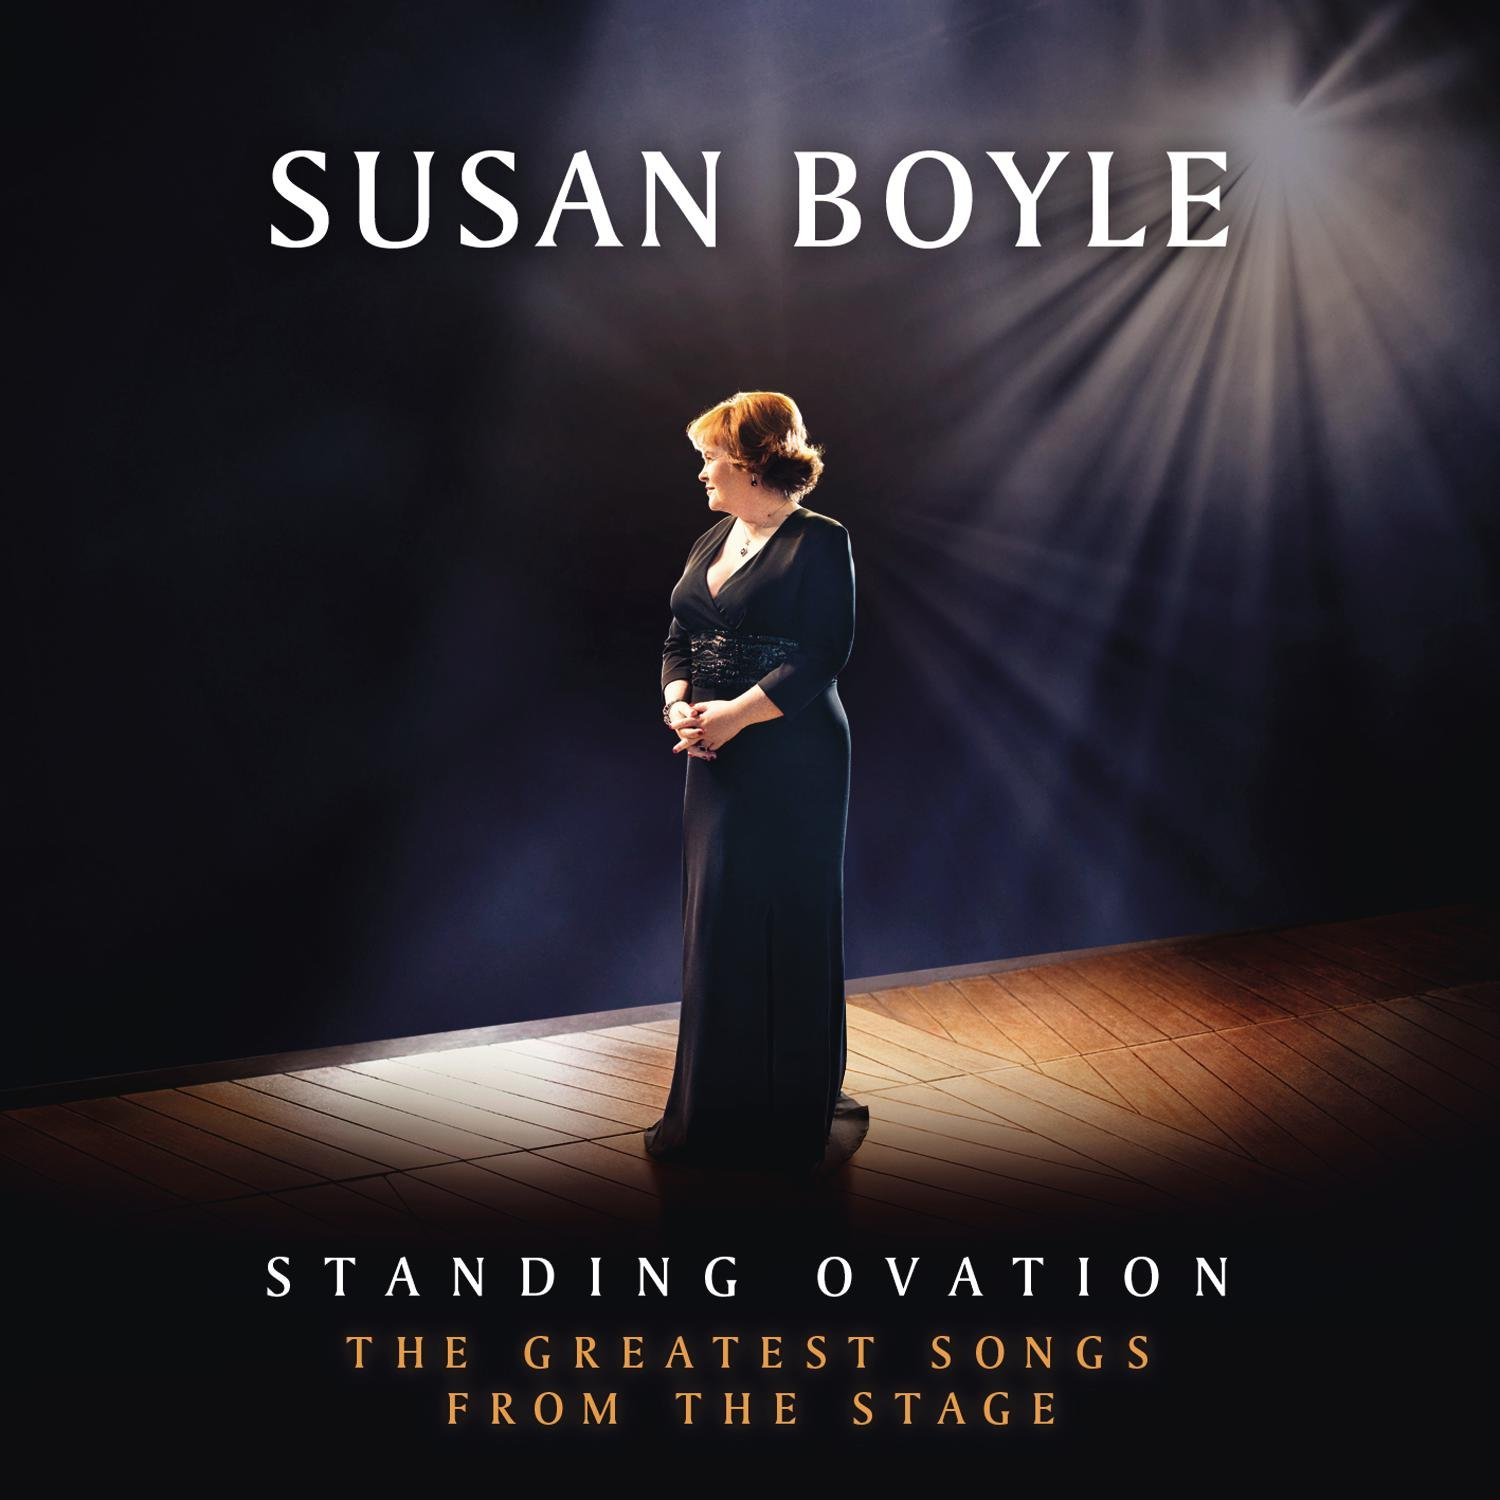 susan boyle standing ovation the greatest songs from the stage